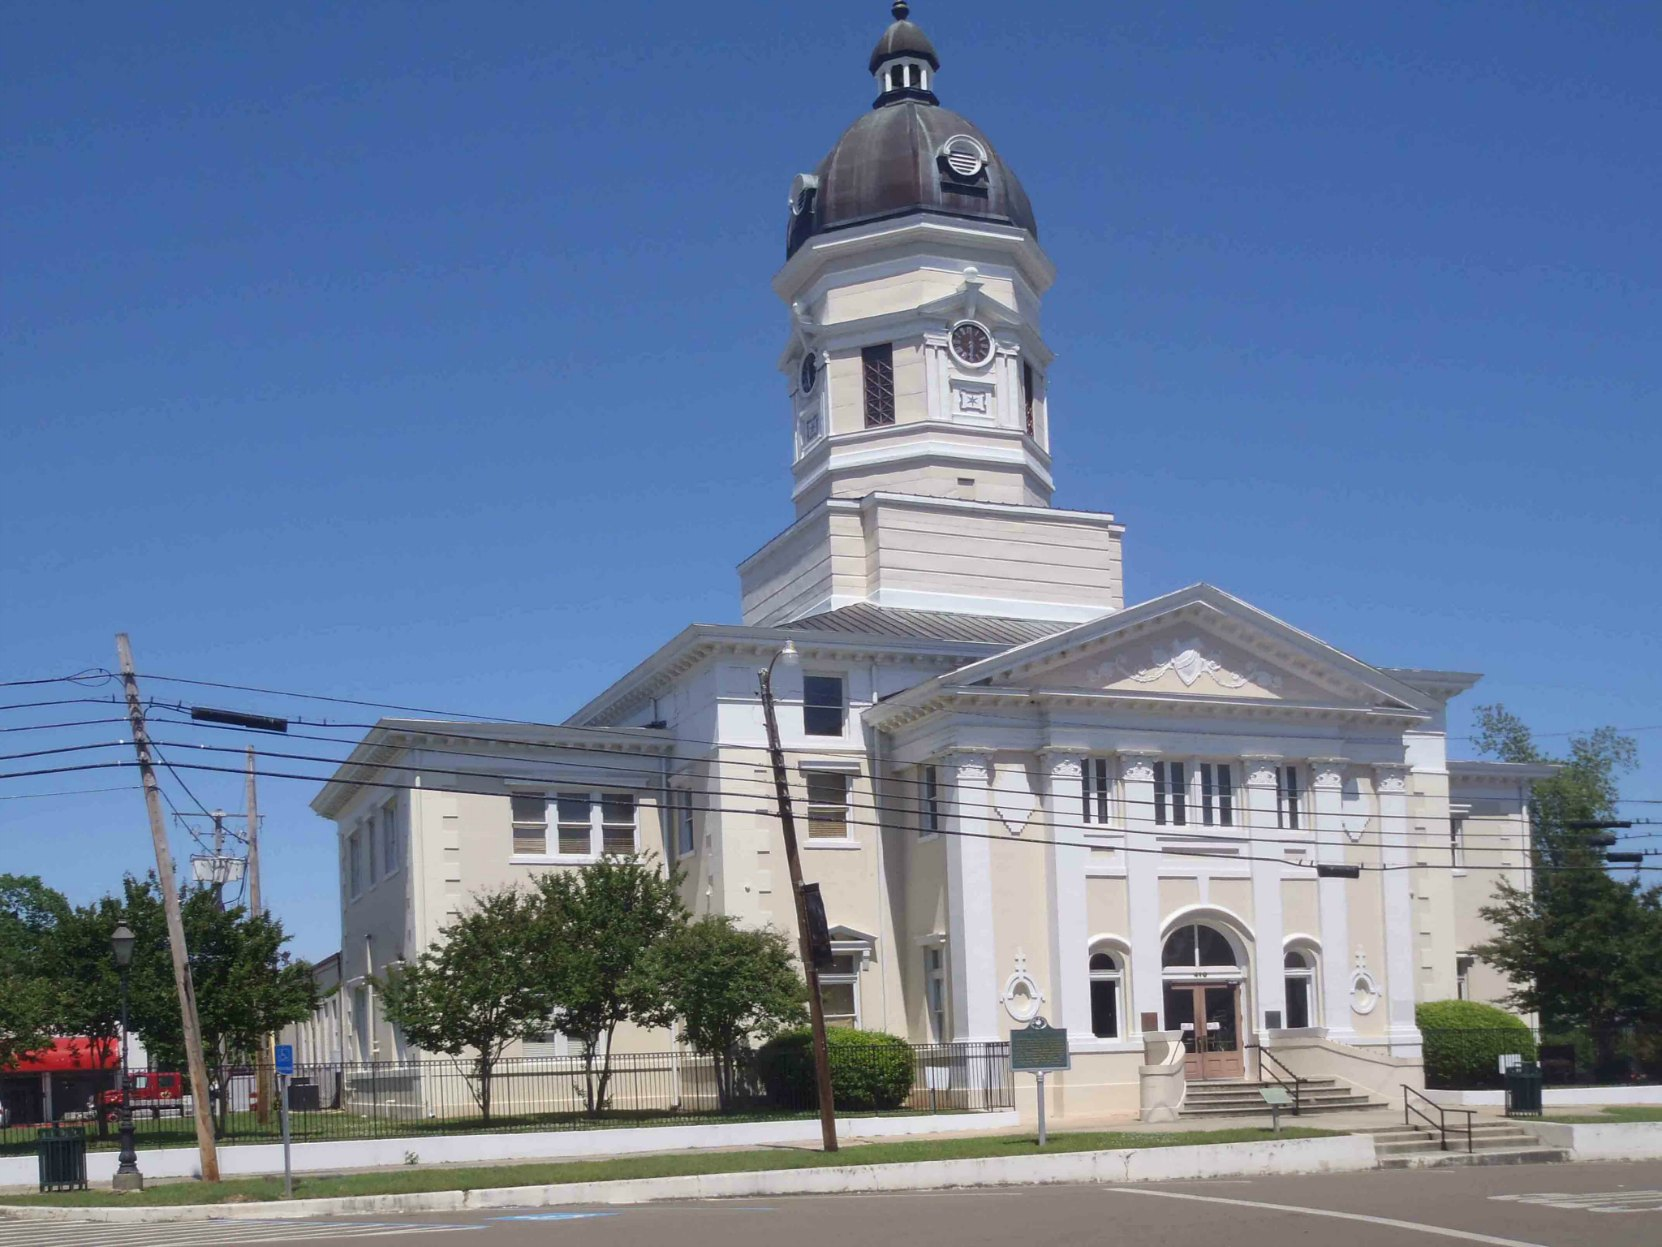 Claiborne County Courthouse, Port Gibson, Mississippi